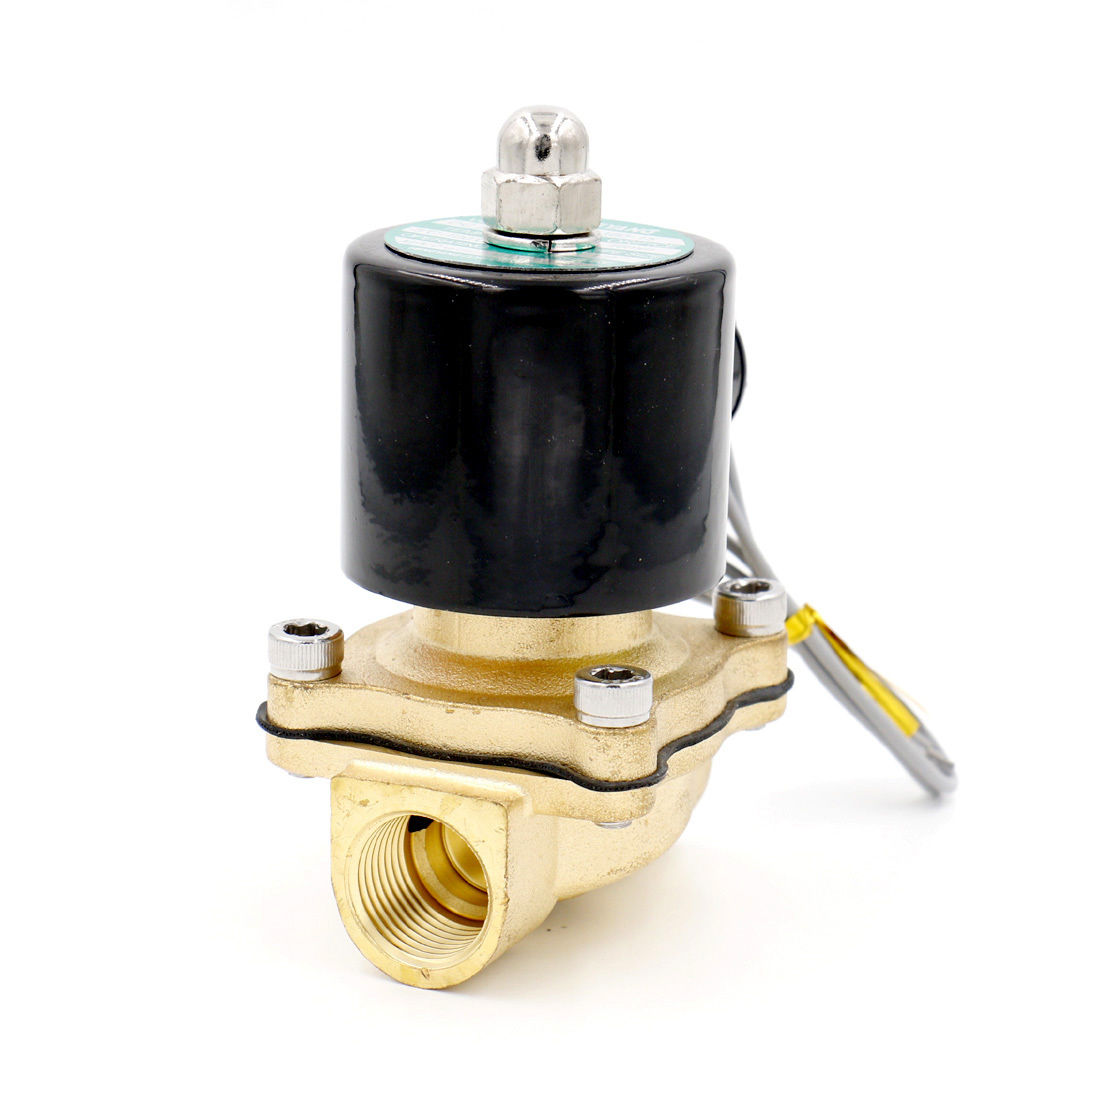 Brass Electric Solenoid Valve 2W-160-15 1/2 Inch NPT for Air Water Valve 12V NC time electric valve ac110v 230 3 4 bsp npt for garden irrigation drain water air pump water automatic control systems